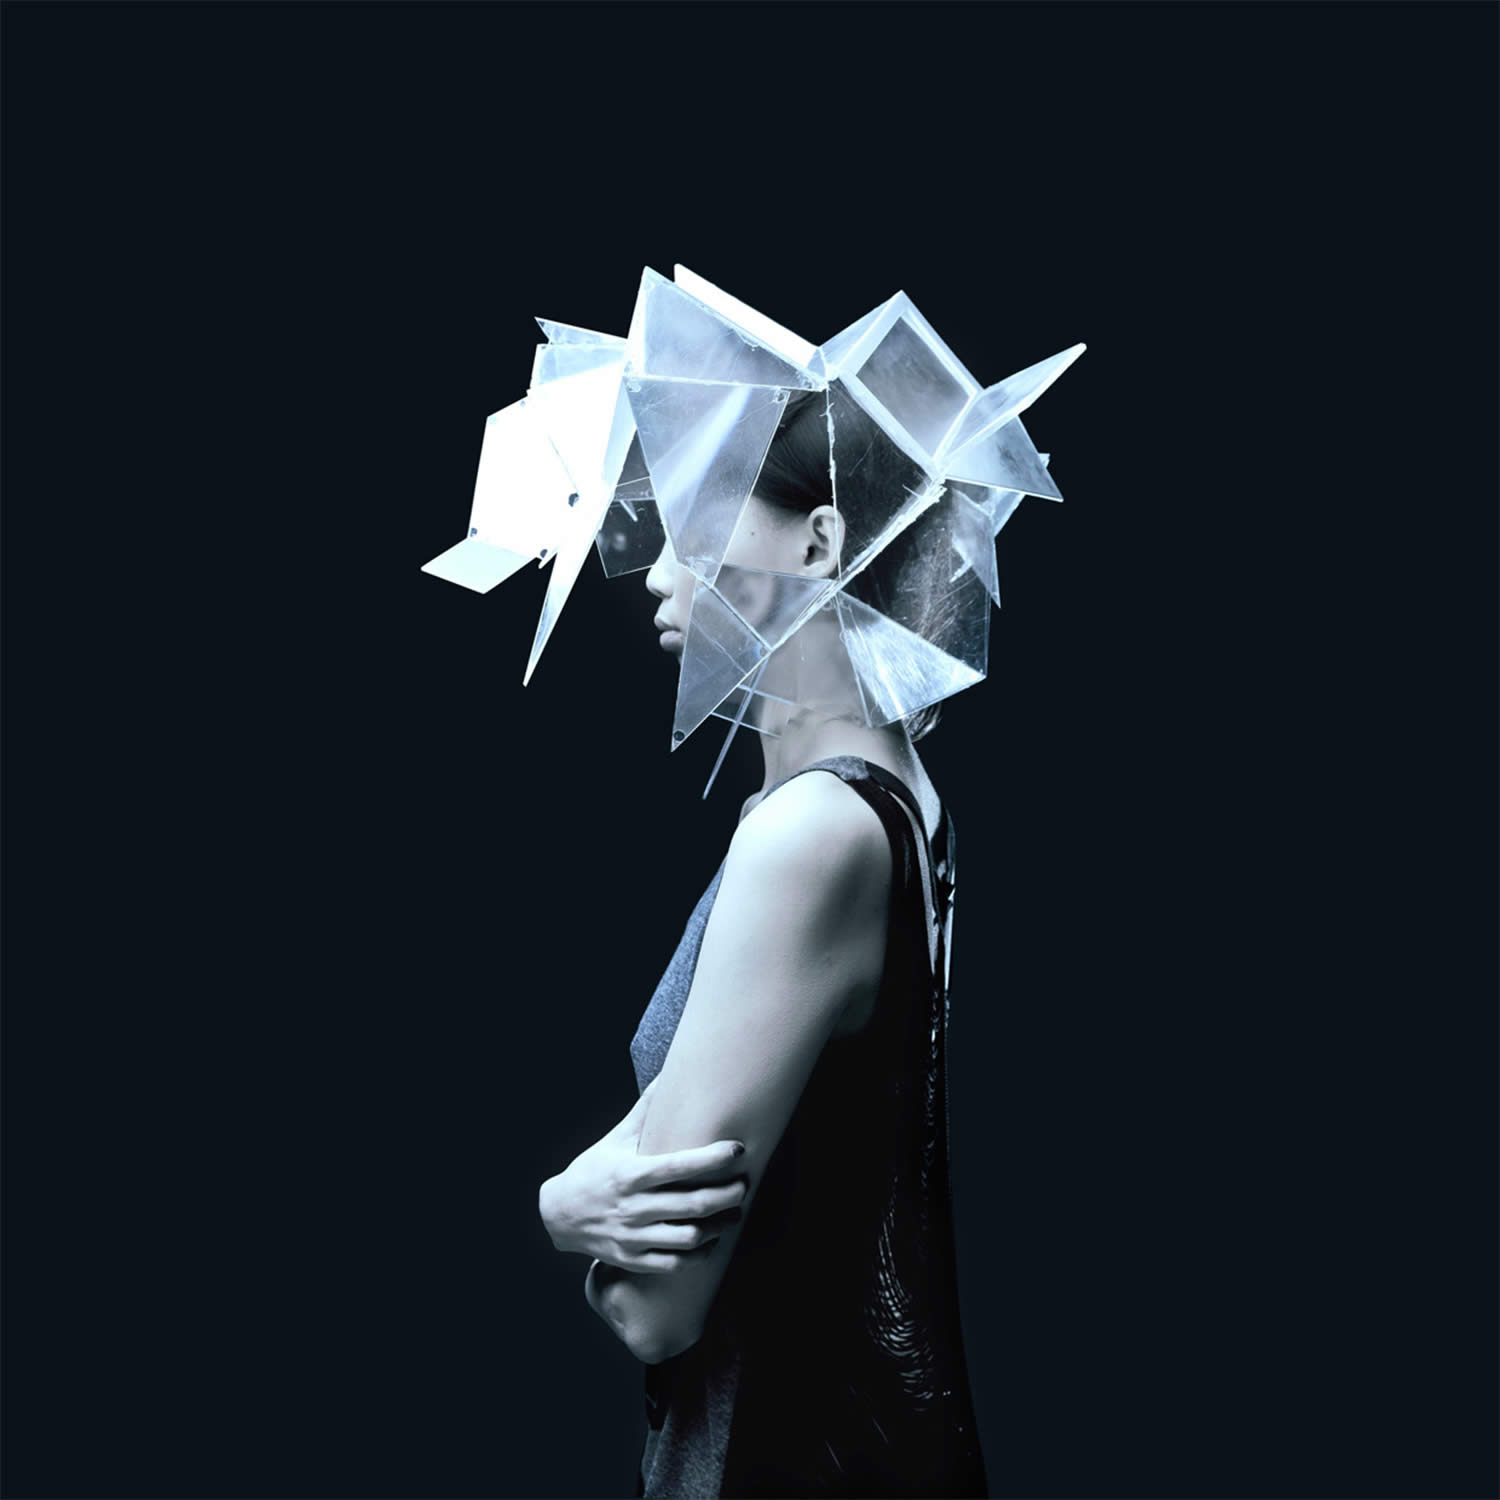 sculptural head piece on woman, by thibault-delhom